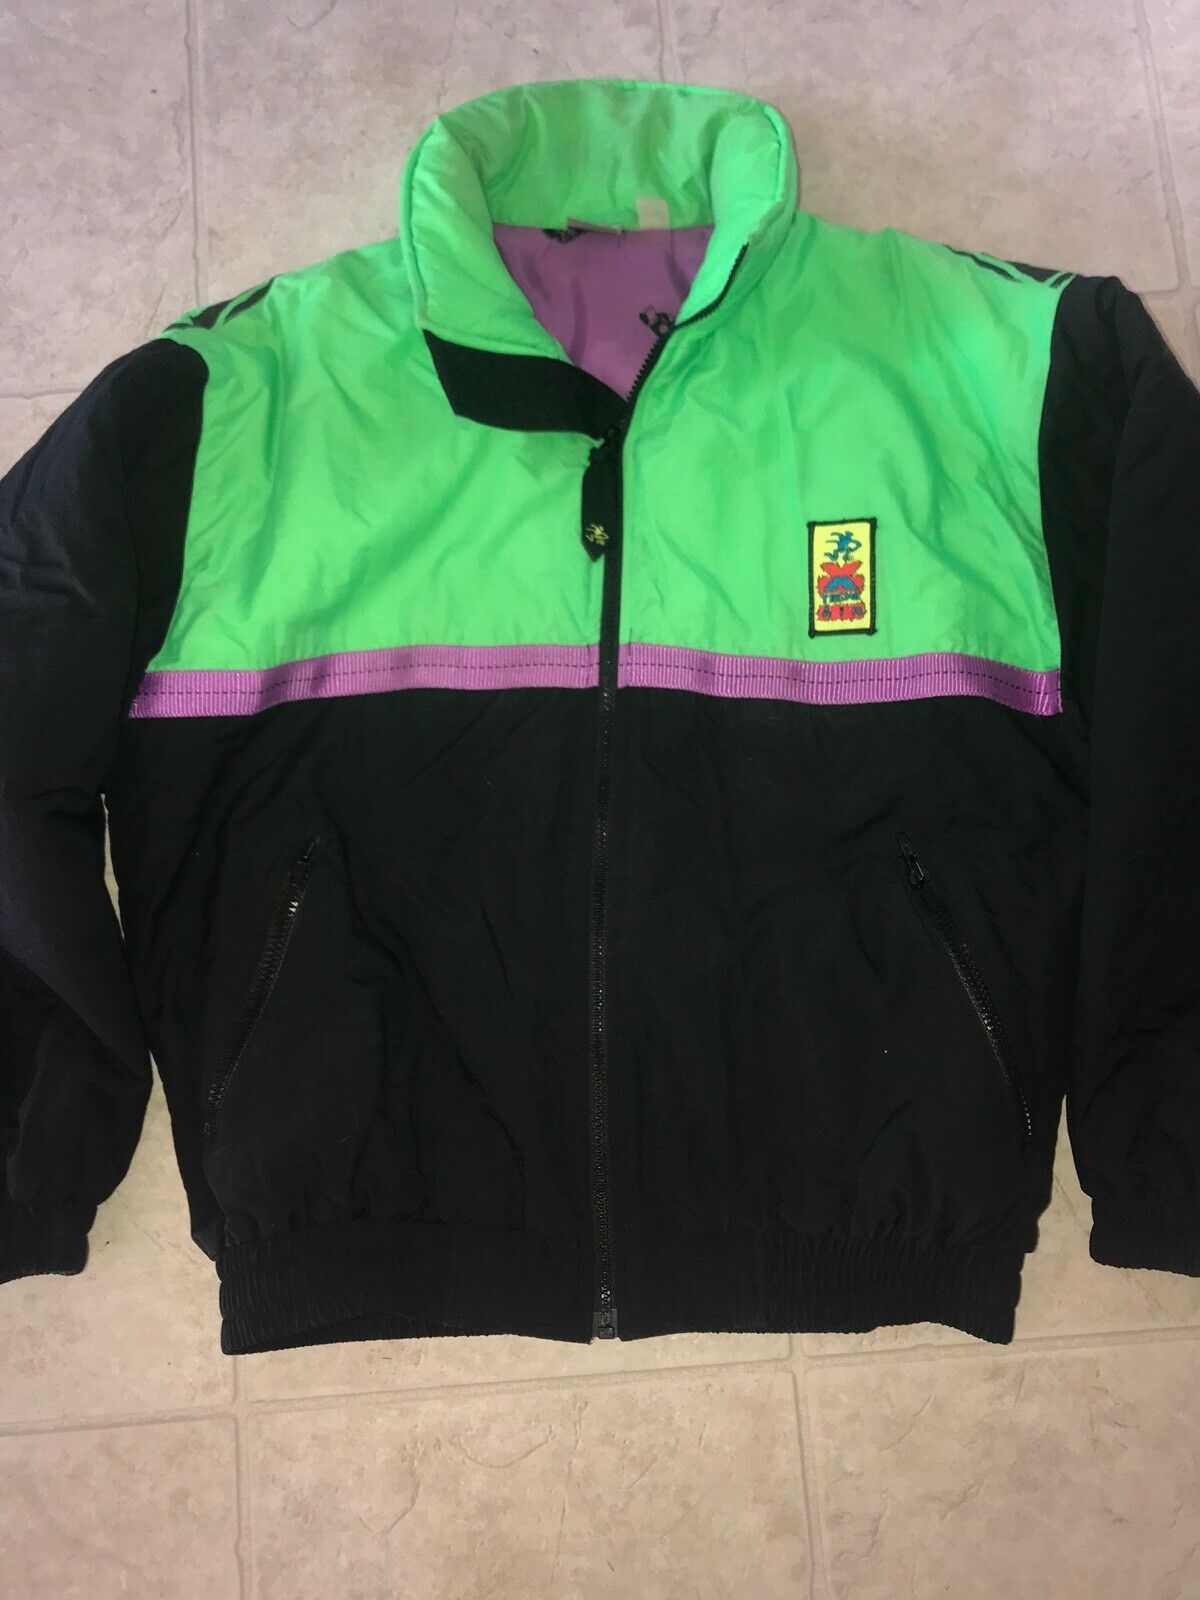 Primary image for Ocean Pacific ~ Vtg Mens Black Neon Green Coat Jacket Xtreme Air 1980's 1990's S